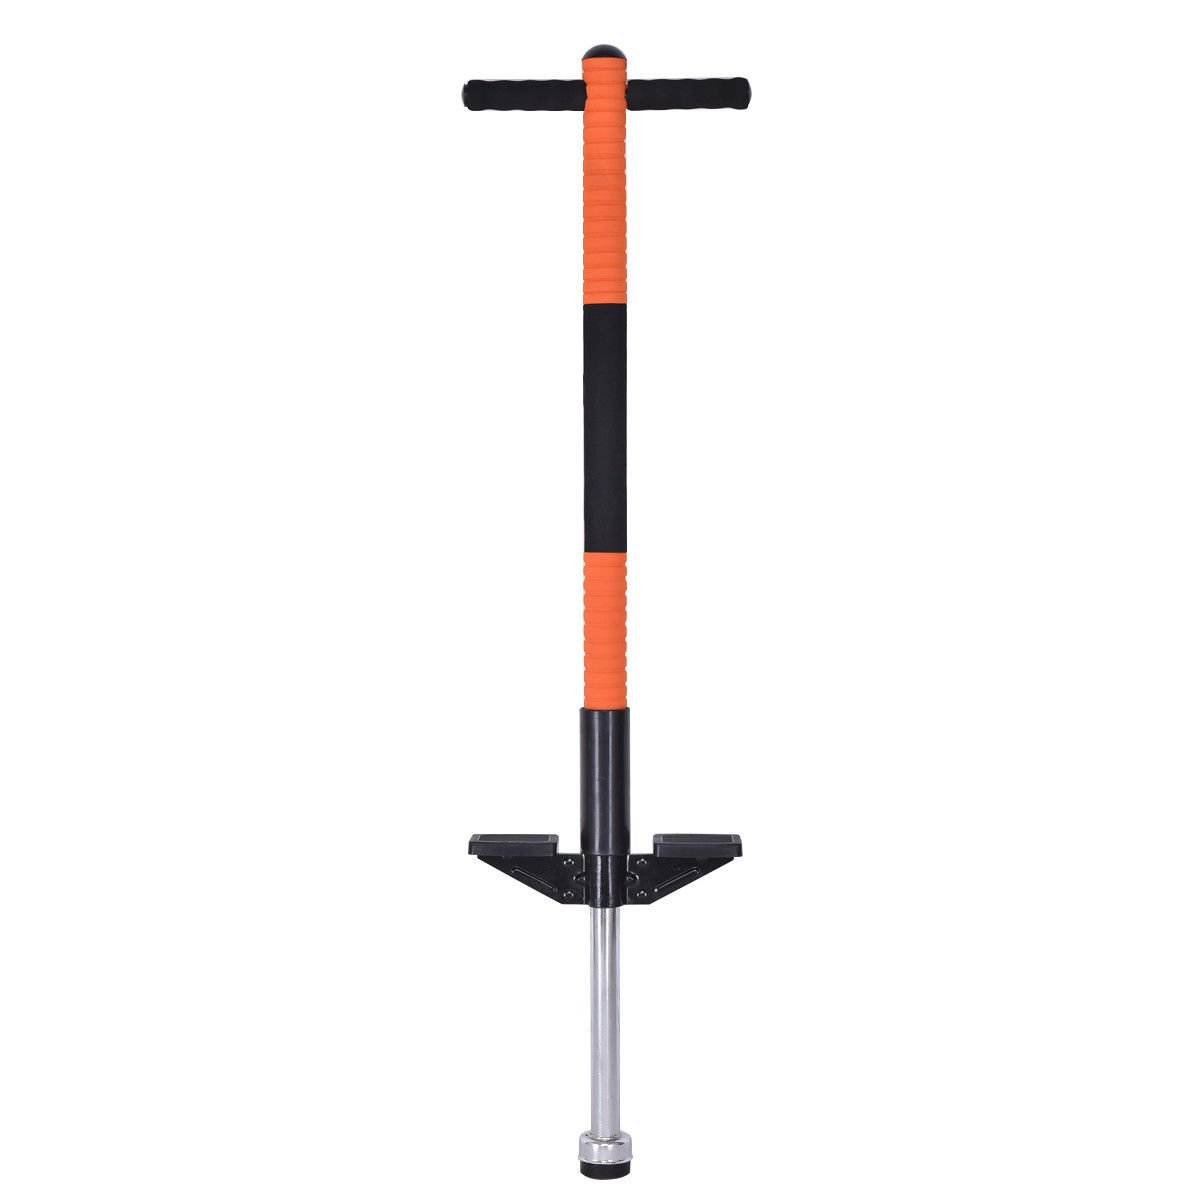 Goplus Pogo Stick Jumping Stick Jumper for Age 5 to 9 Up to 85lbs Perfect Kids Gift for Balance Training (Orange)